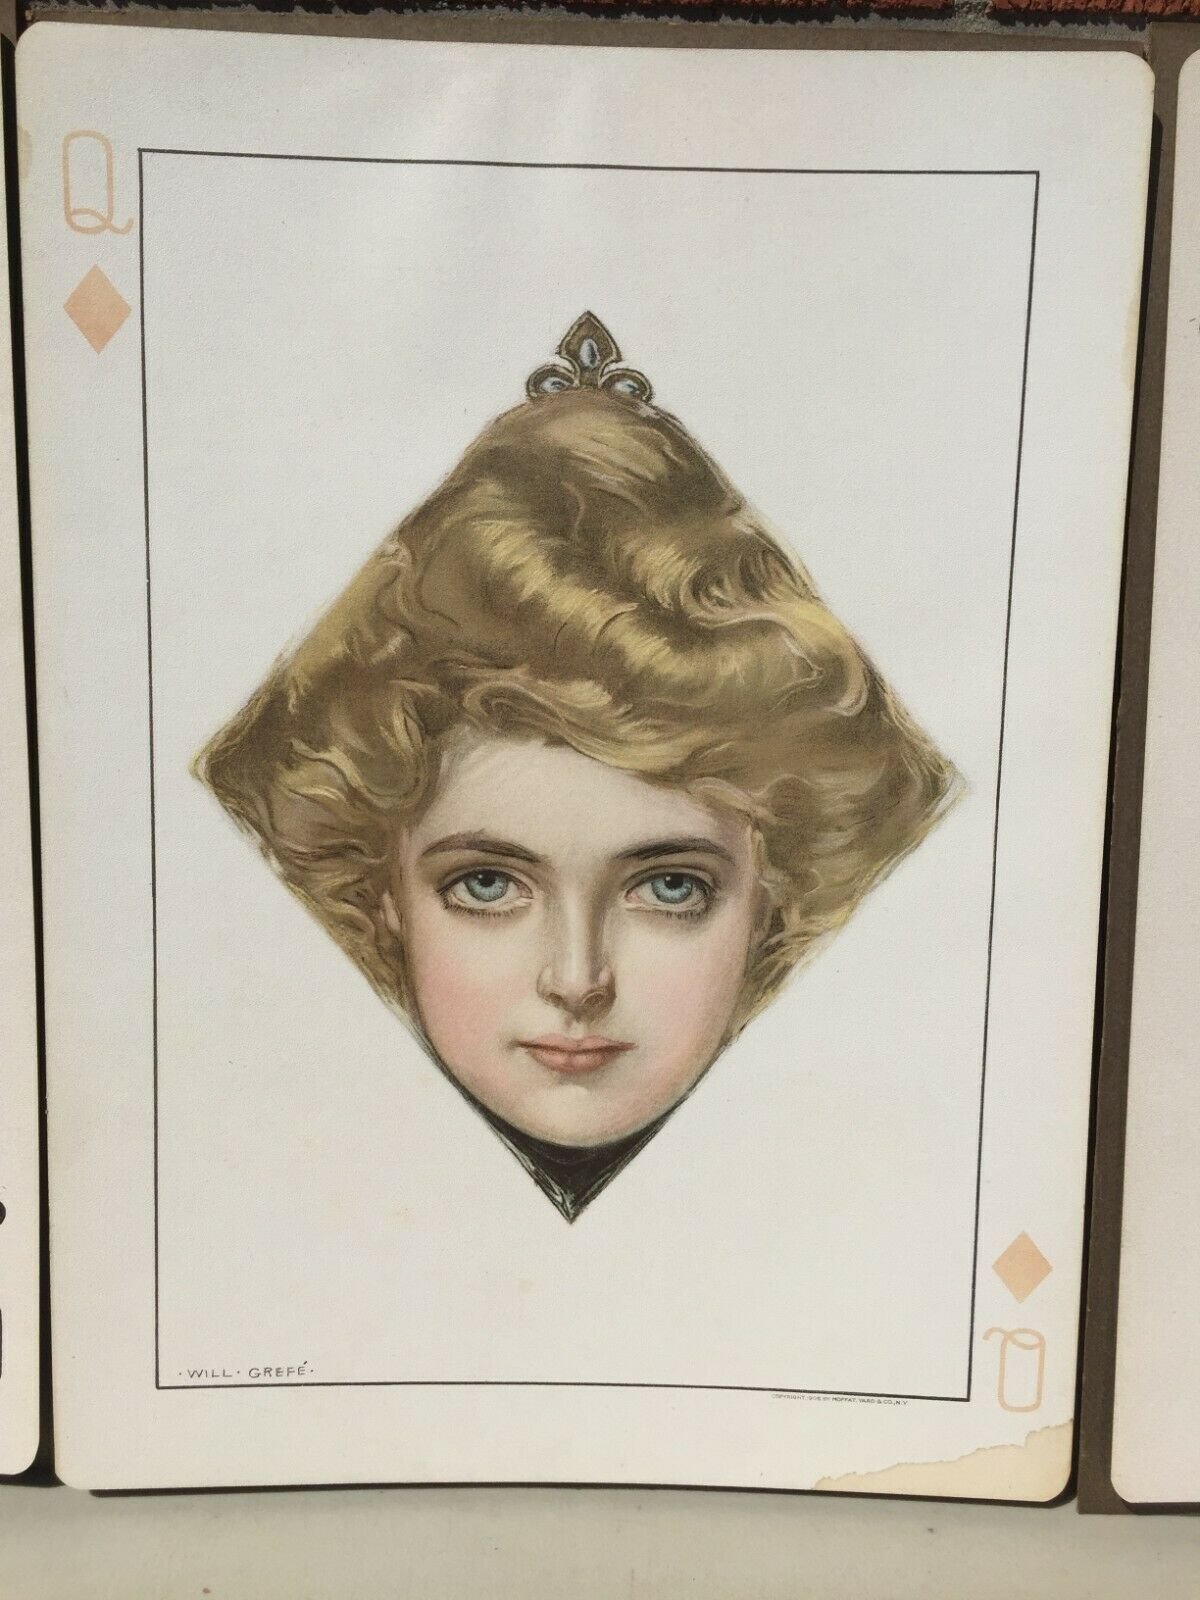 RARE VINTAGE WILL GREFE QUEEN OF HEARTS, SPADES, CLUBS DIAMONDS PRINTS - $950.00